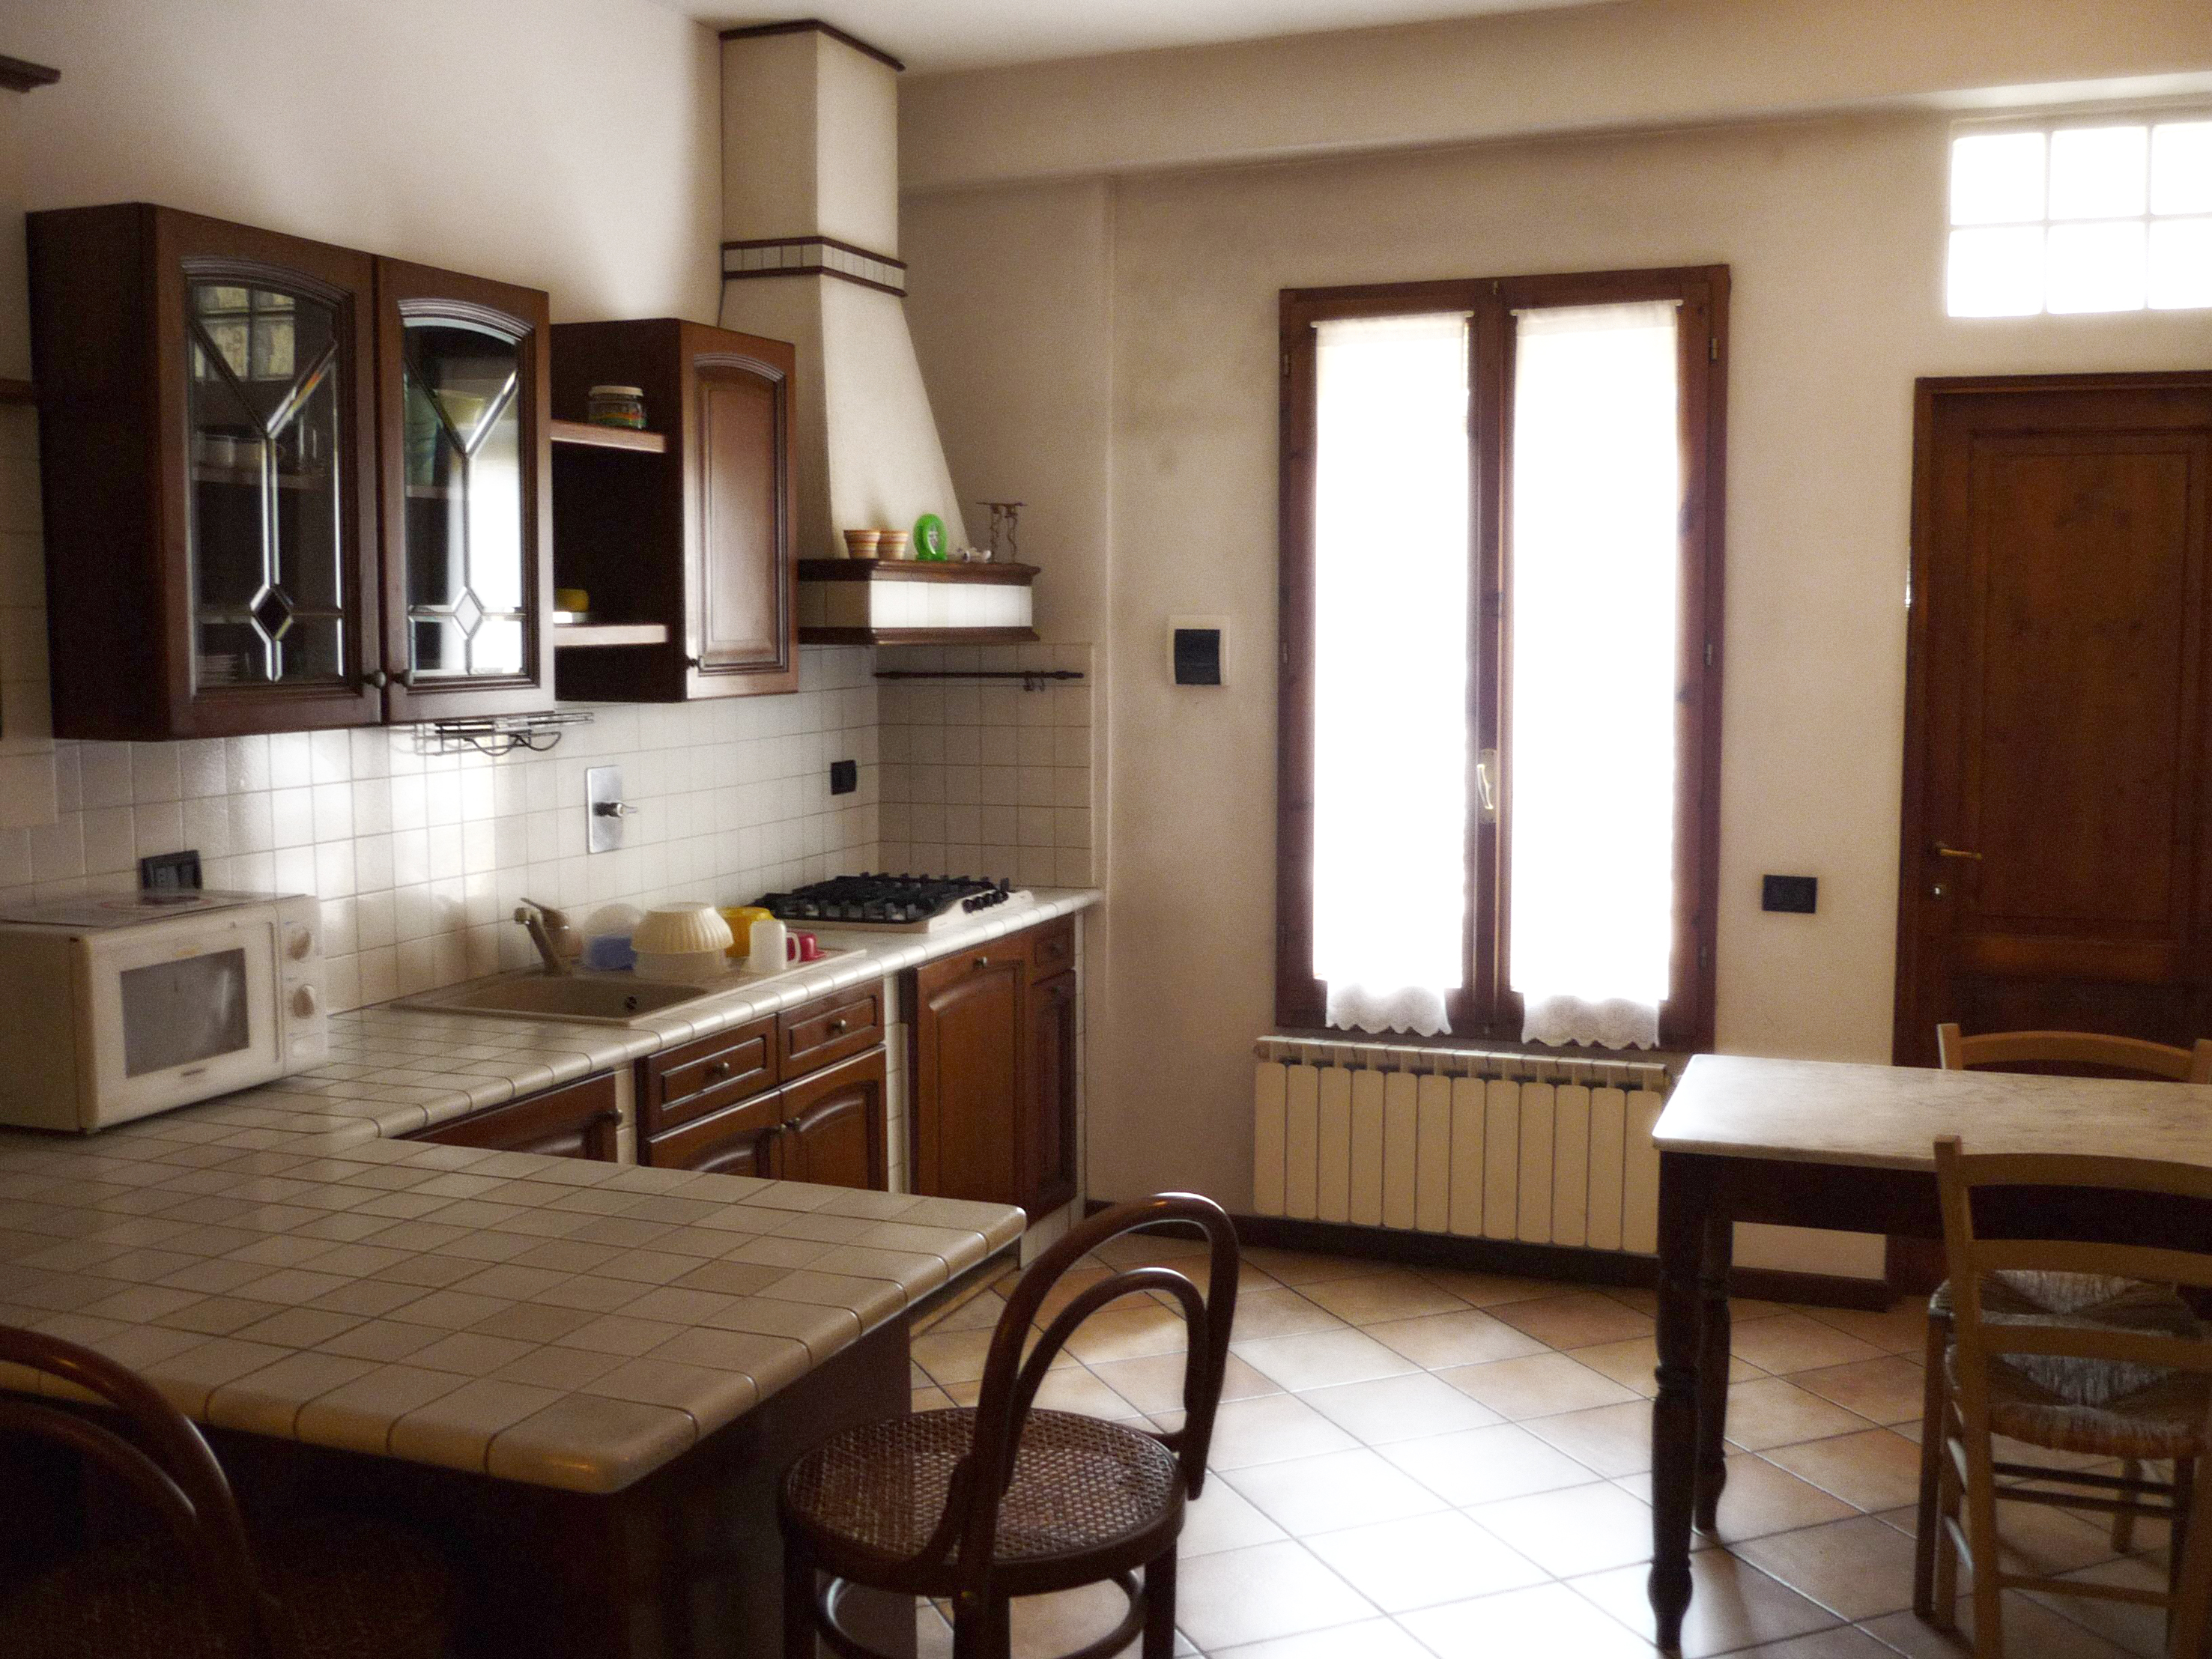 Traditional Student apartment with full kitchen.